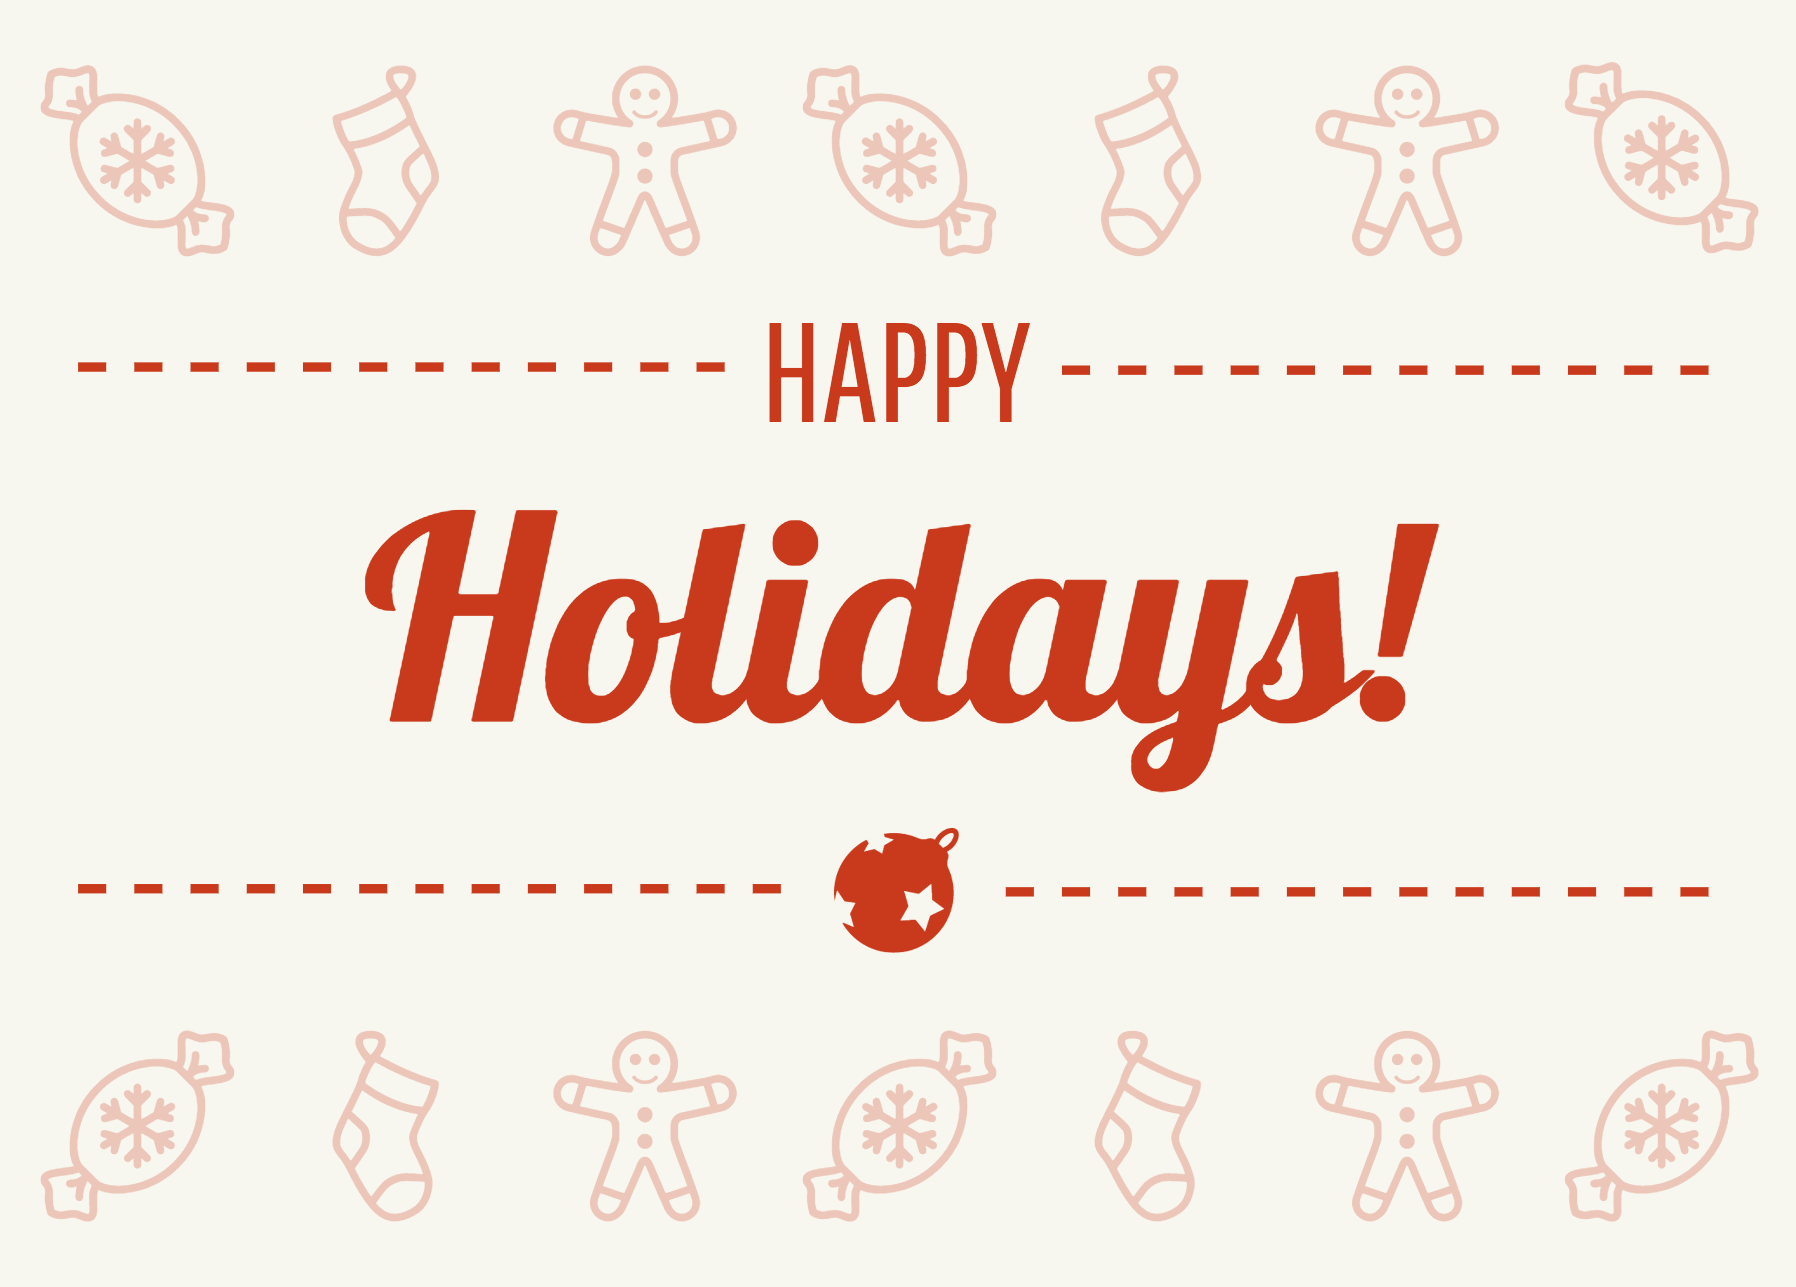 Infographics: Holiday Images